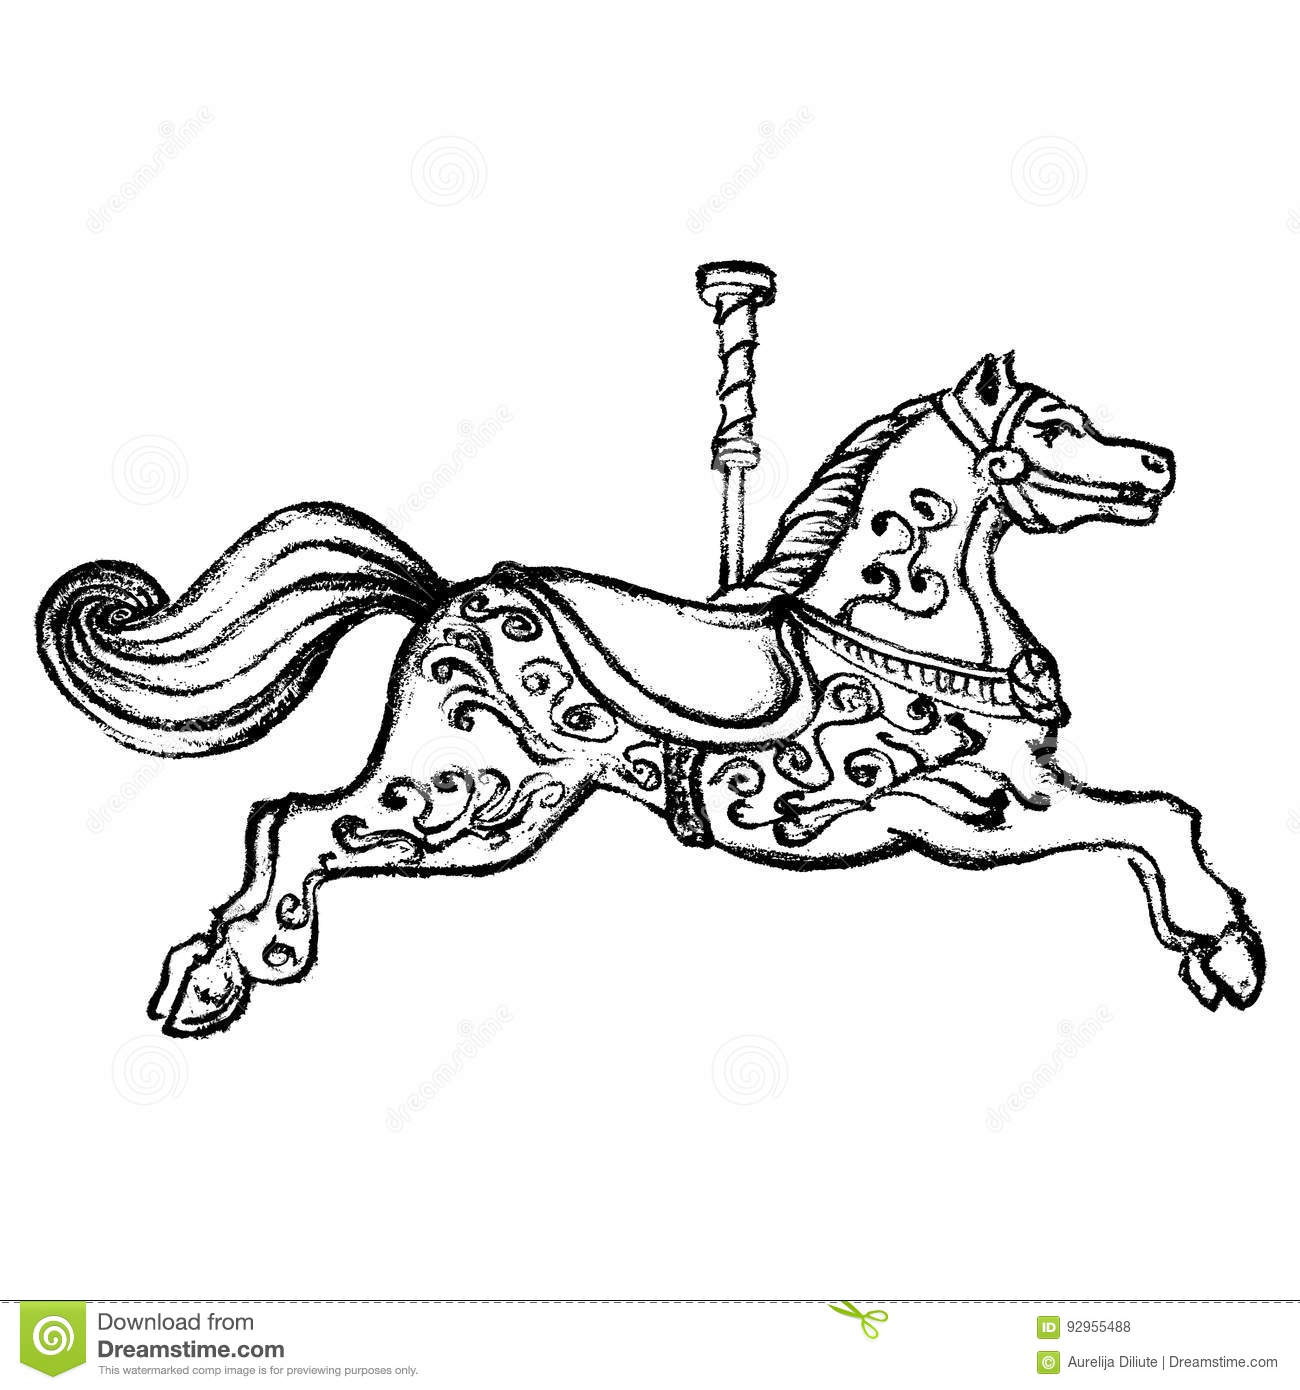 Vintage Carousel Horse Black White Stock Illustrations 77 Vintage Carousel Horse Black White Stock Illustrations Vectors Clipart Dreamstime